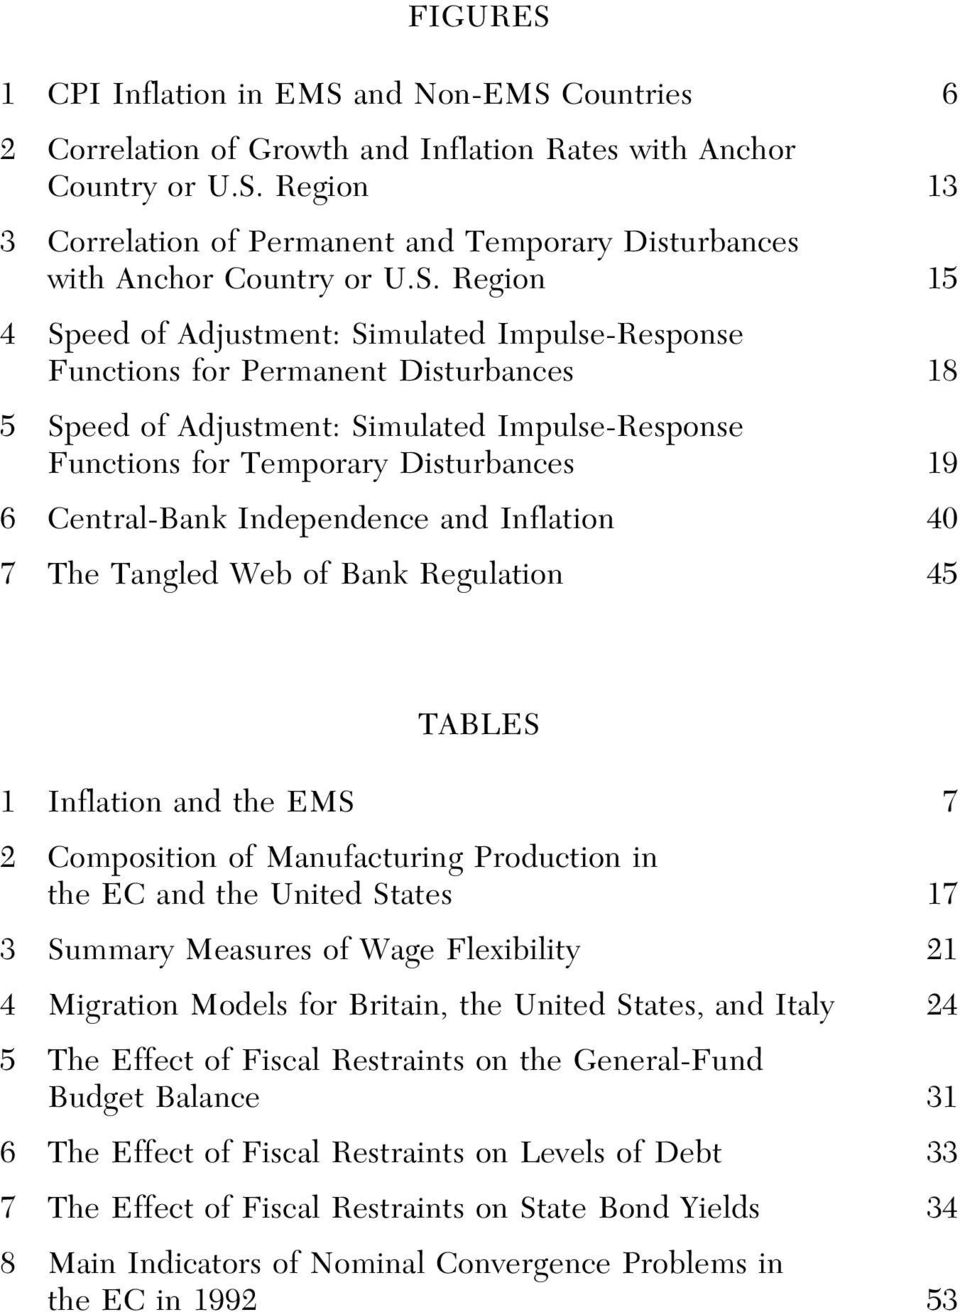 Central-Bank Independence and Inflation 40 7 The Tangled Web of Bank Regulation 45 TABLES 1 Inflation and the EMS 7 2 Composition of Manufacturing Production in the EC and the United States 17 3